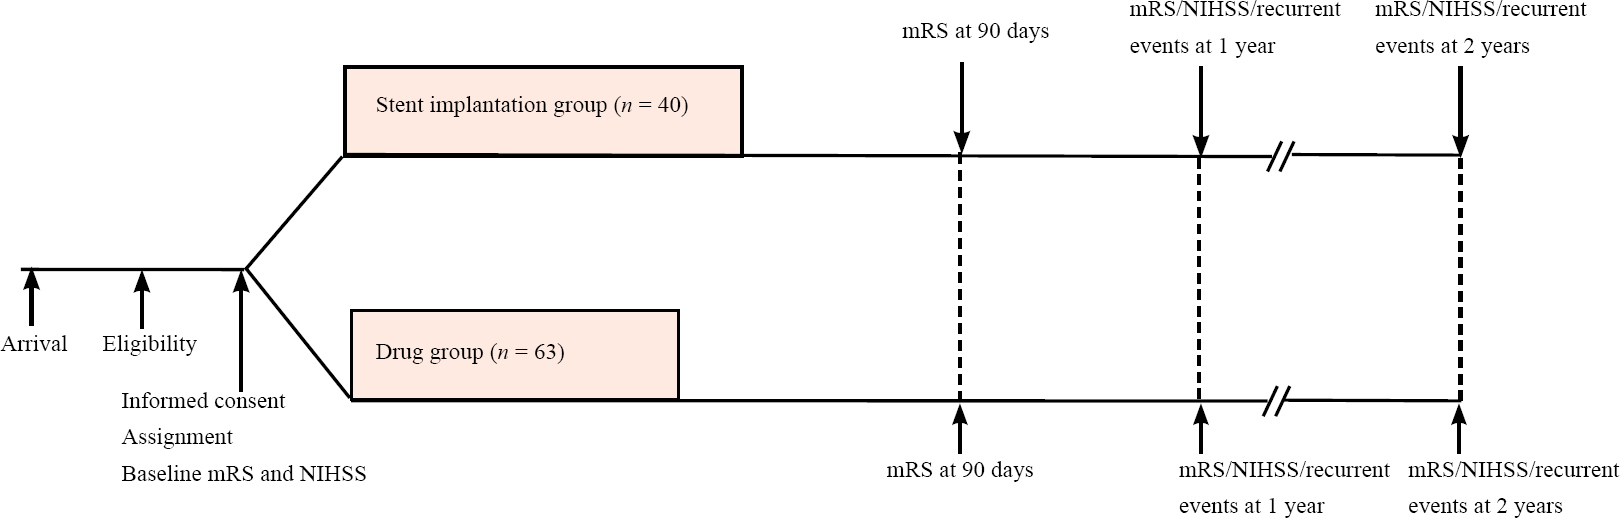 Figure 1: Flow chart of the trial protocol.